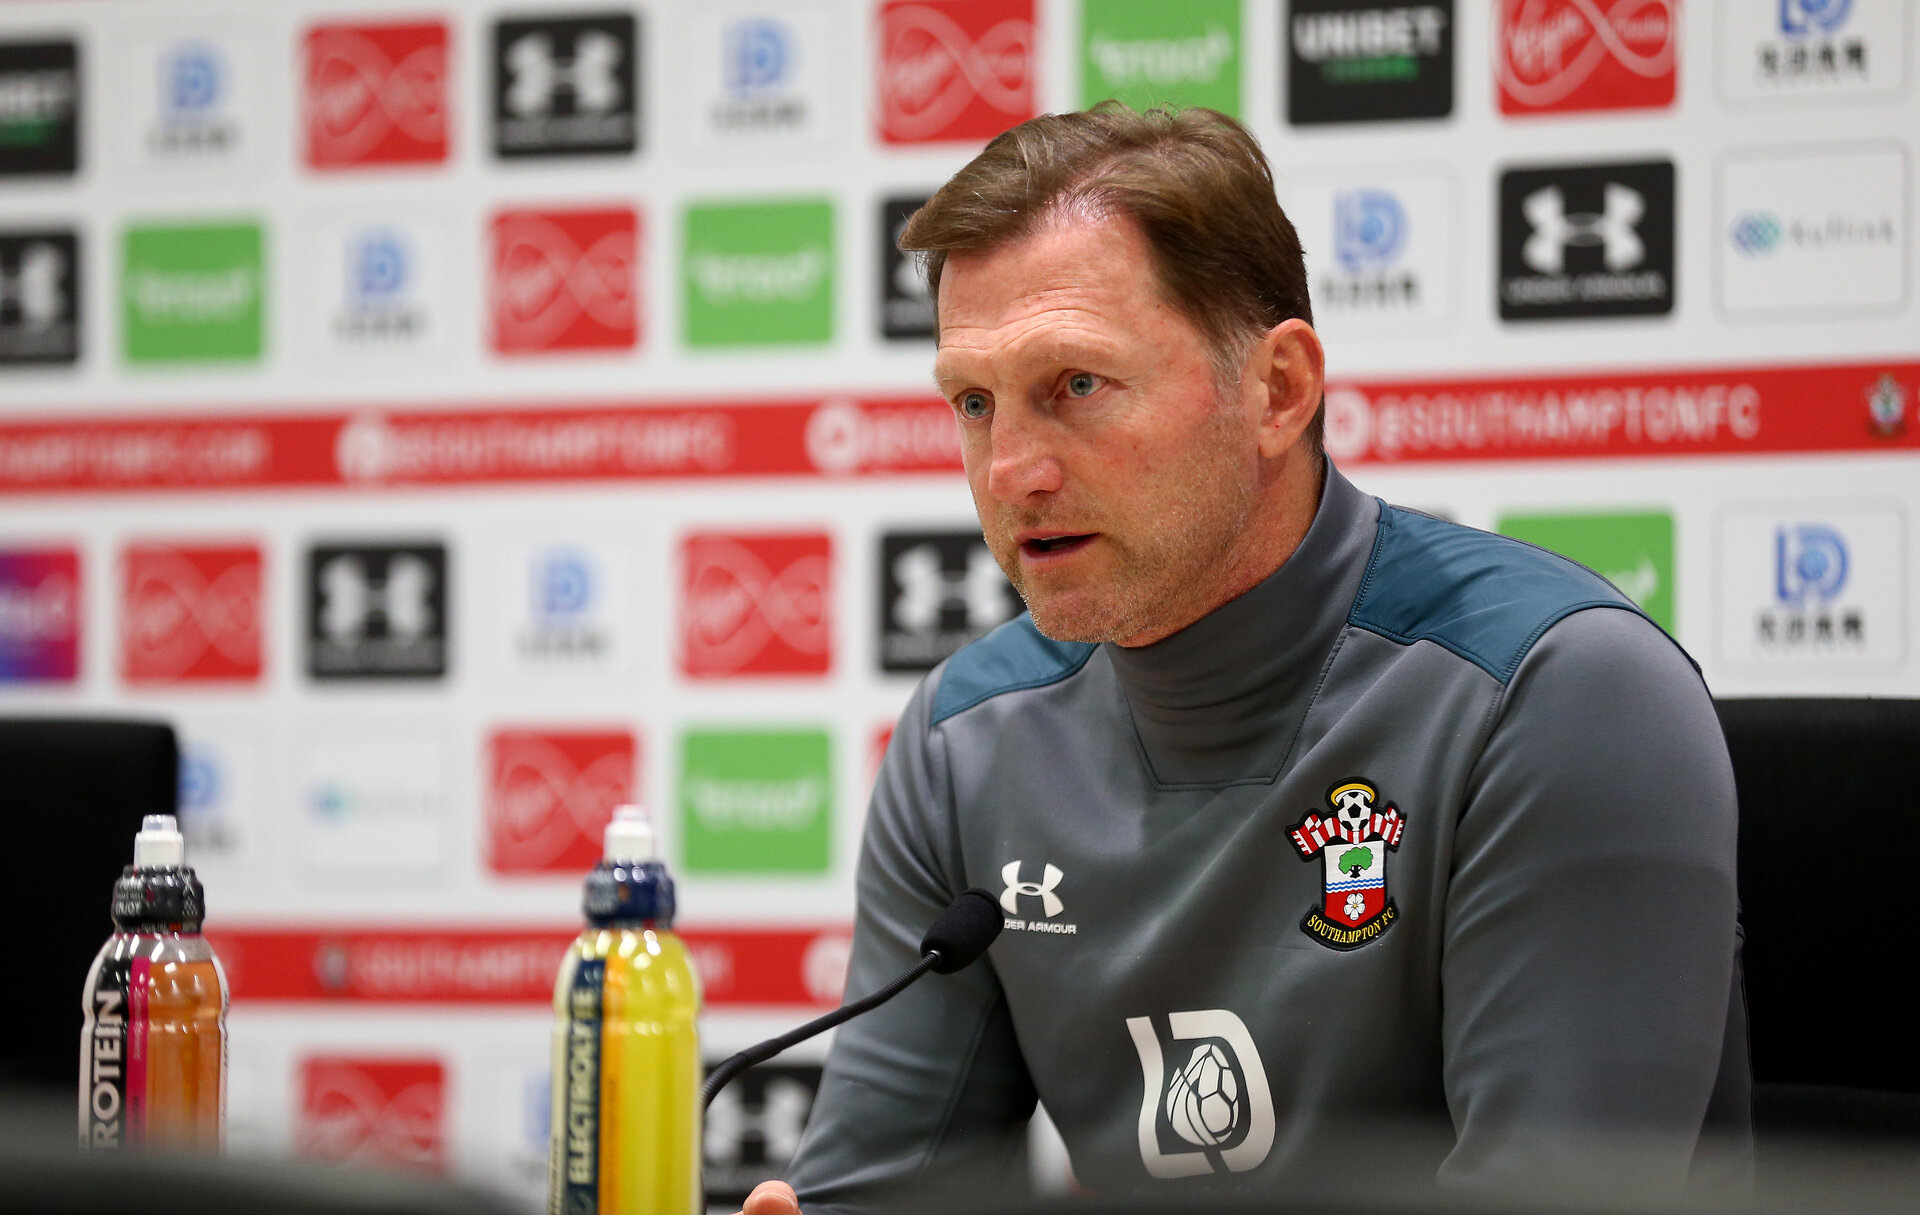 SOUTHAMPTON, ENGLAND - DECEMBER 06: Manager Ralph Hasenhuttl during a Southampton FC press conference at the Staplewood Campus on December 06, 2019 in Southampton, England. (Photo by Matt Watson/Southampton FC via Getty Images)